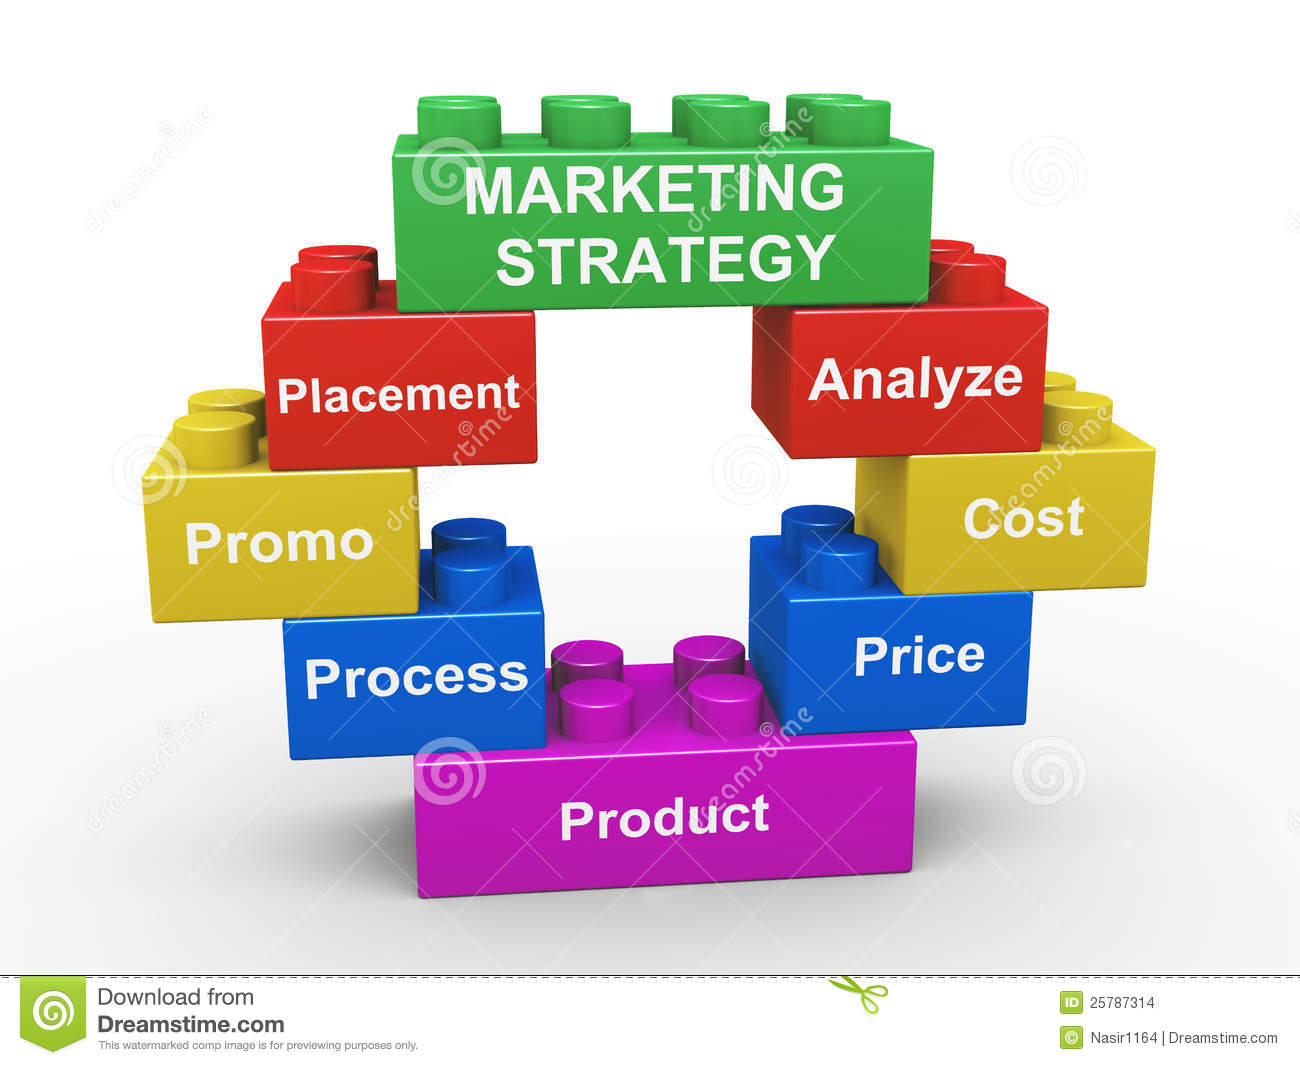 marketing stategy To grow your business, you need a marketing plan the right marketing plan identifies everything from 1) who your target customers are to 2) how you will reach them, to 3) how you will retain your.